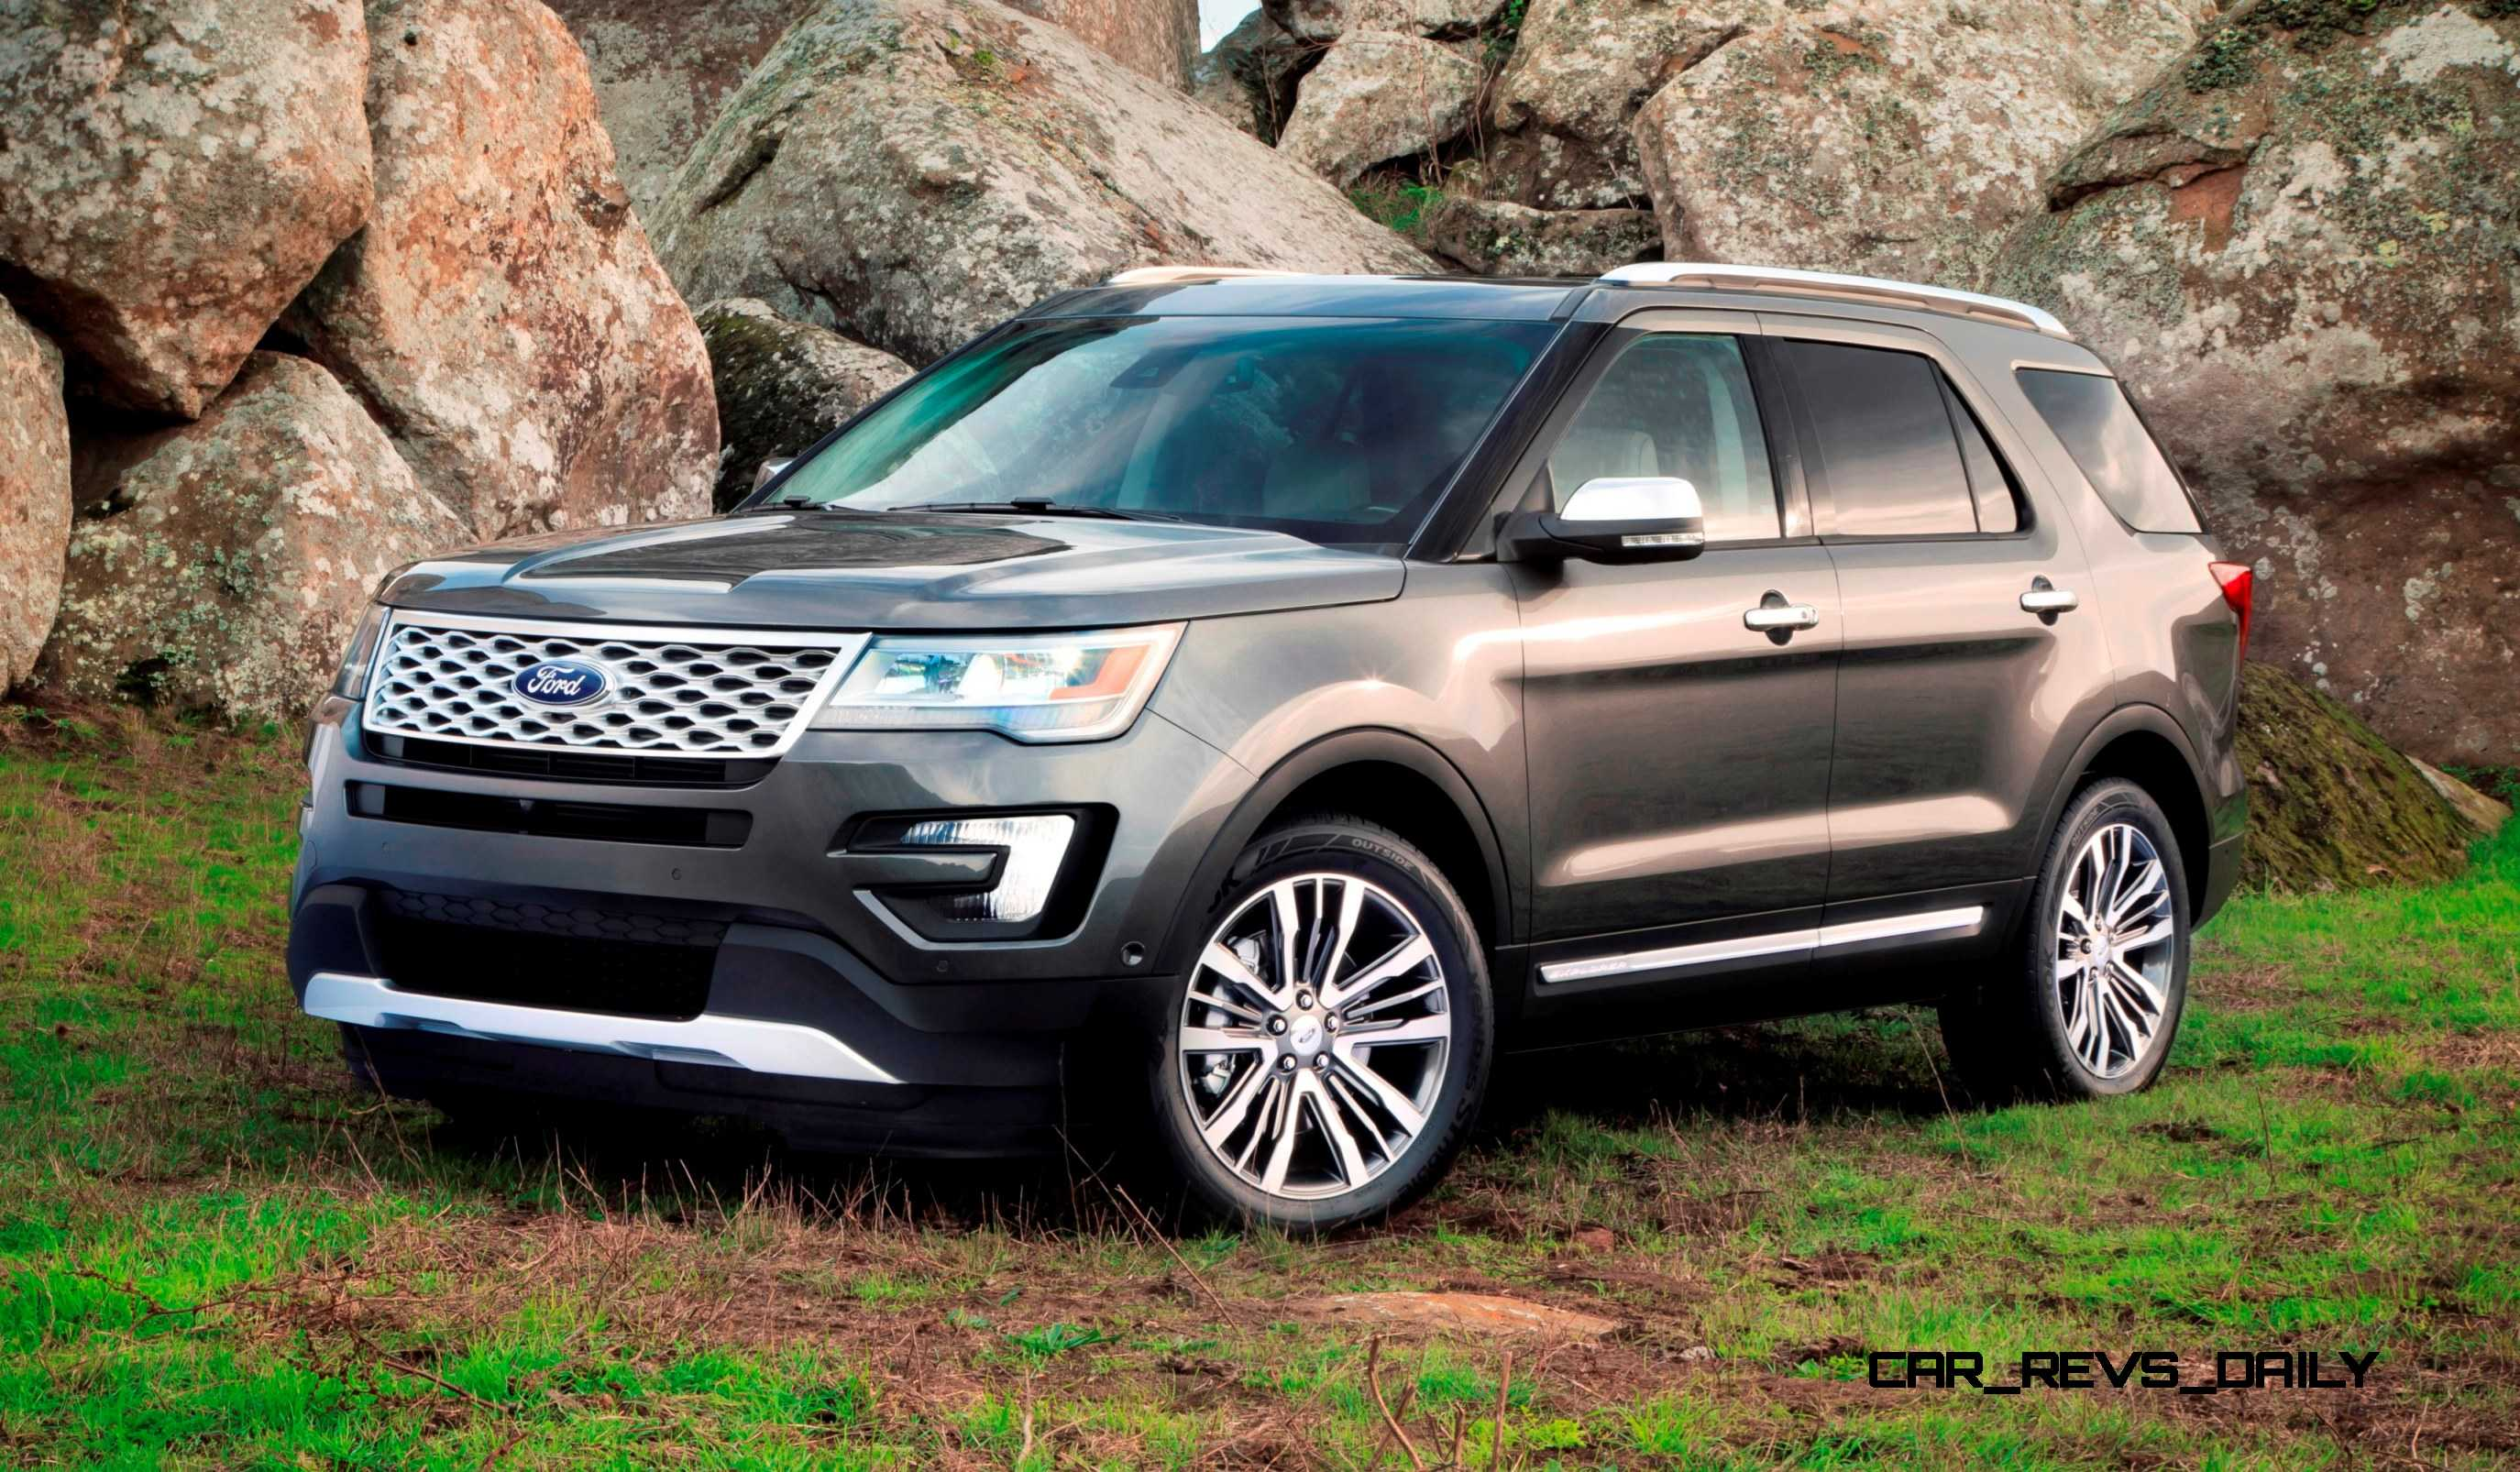 2016 ford explorer revealed with new engines fresh styling and platinum range topper. Black Bedroom Furniture Sets. Home Design Ideas